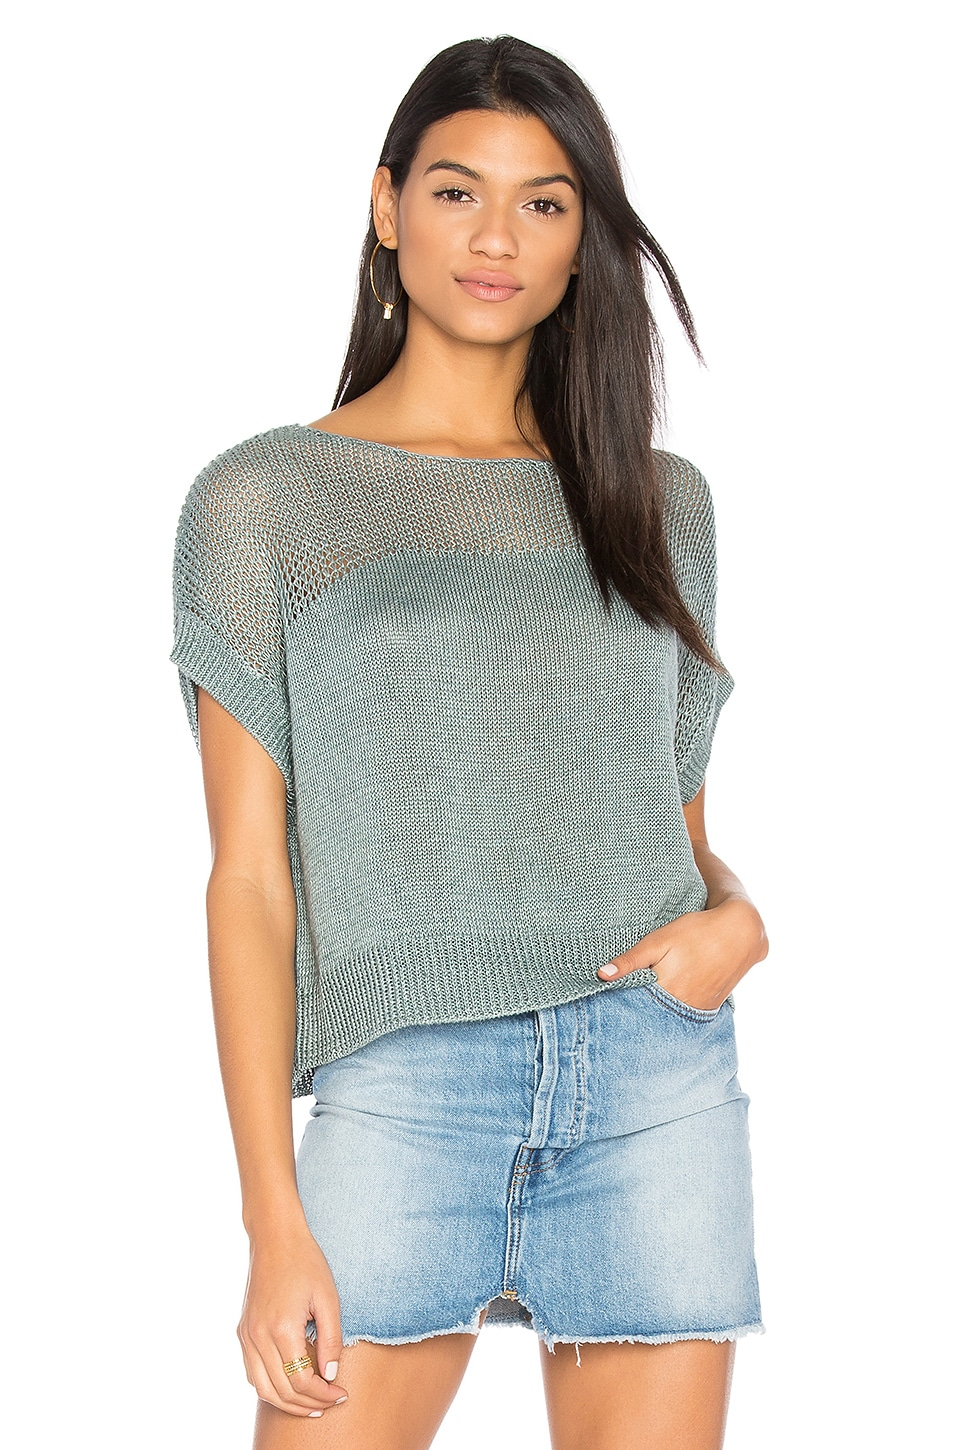 Lunetta Short Sleeve Sweater by Charli